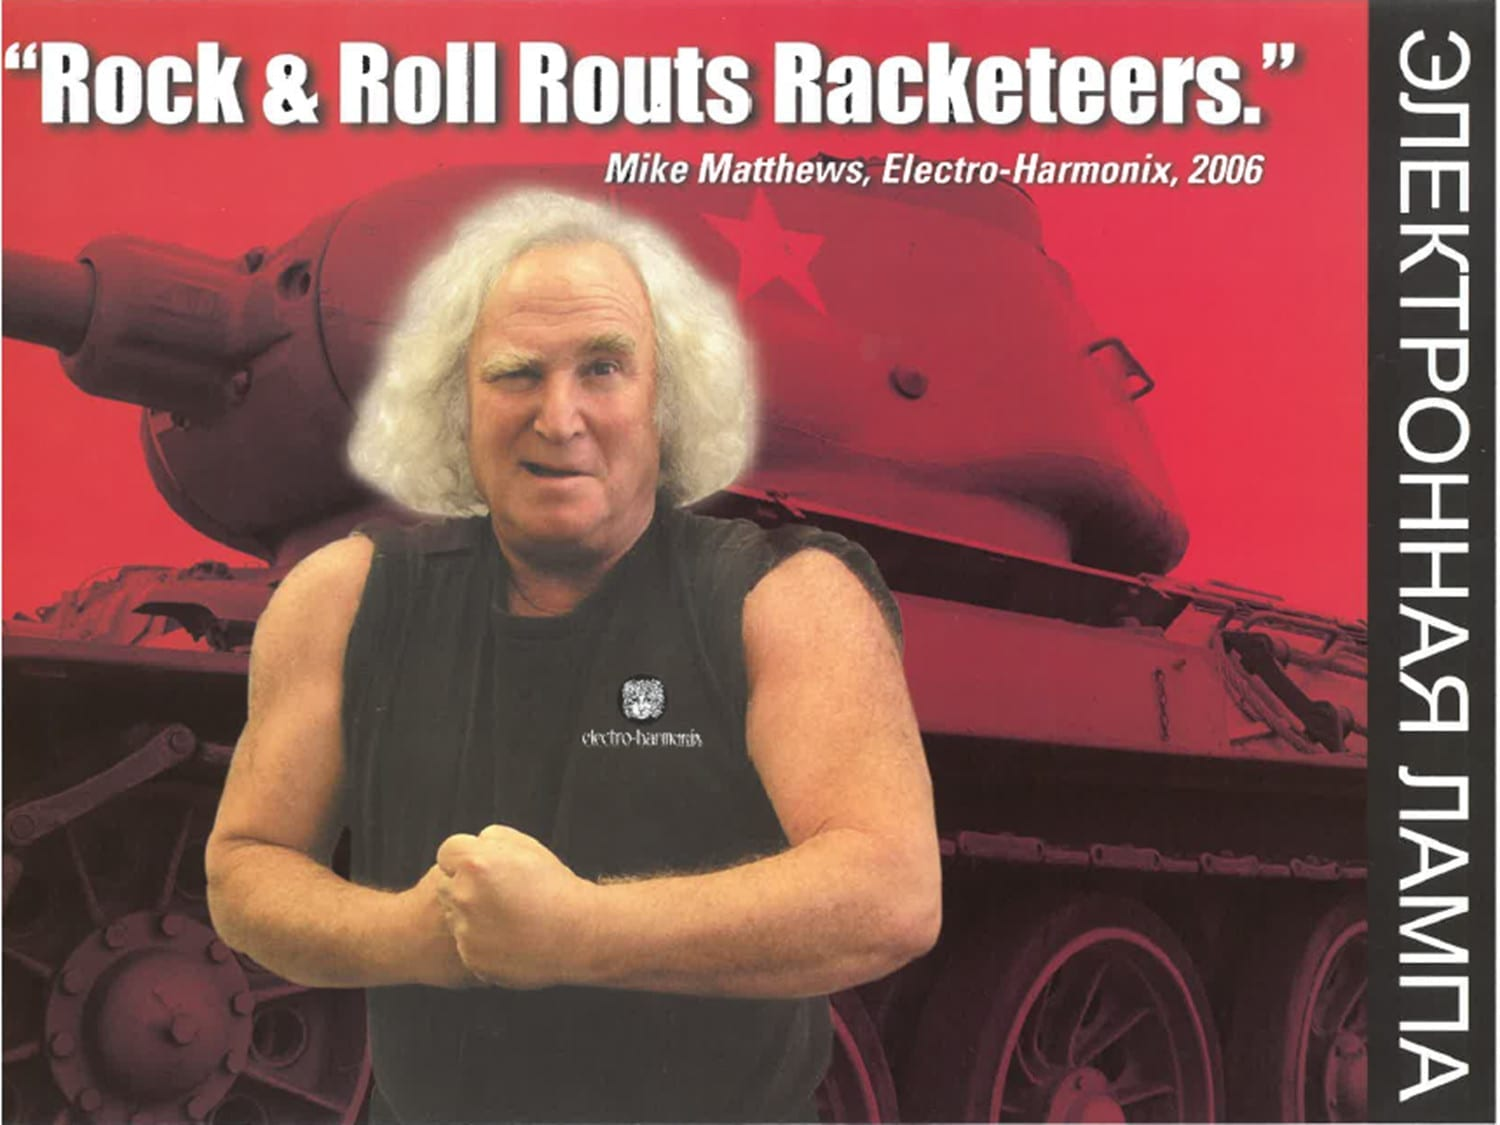 Rock & Roll Routs Racketeers